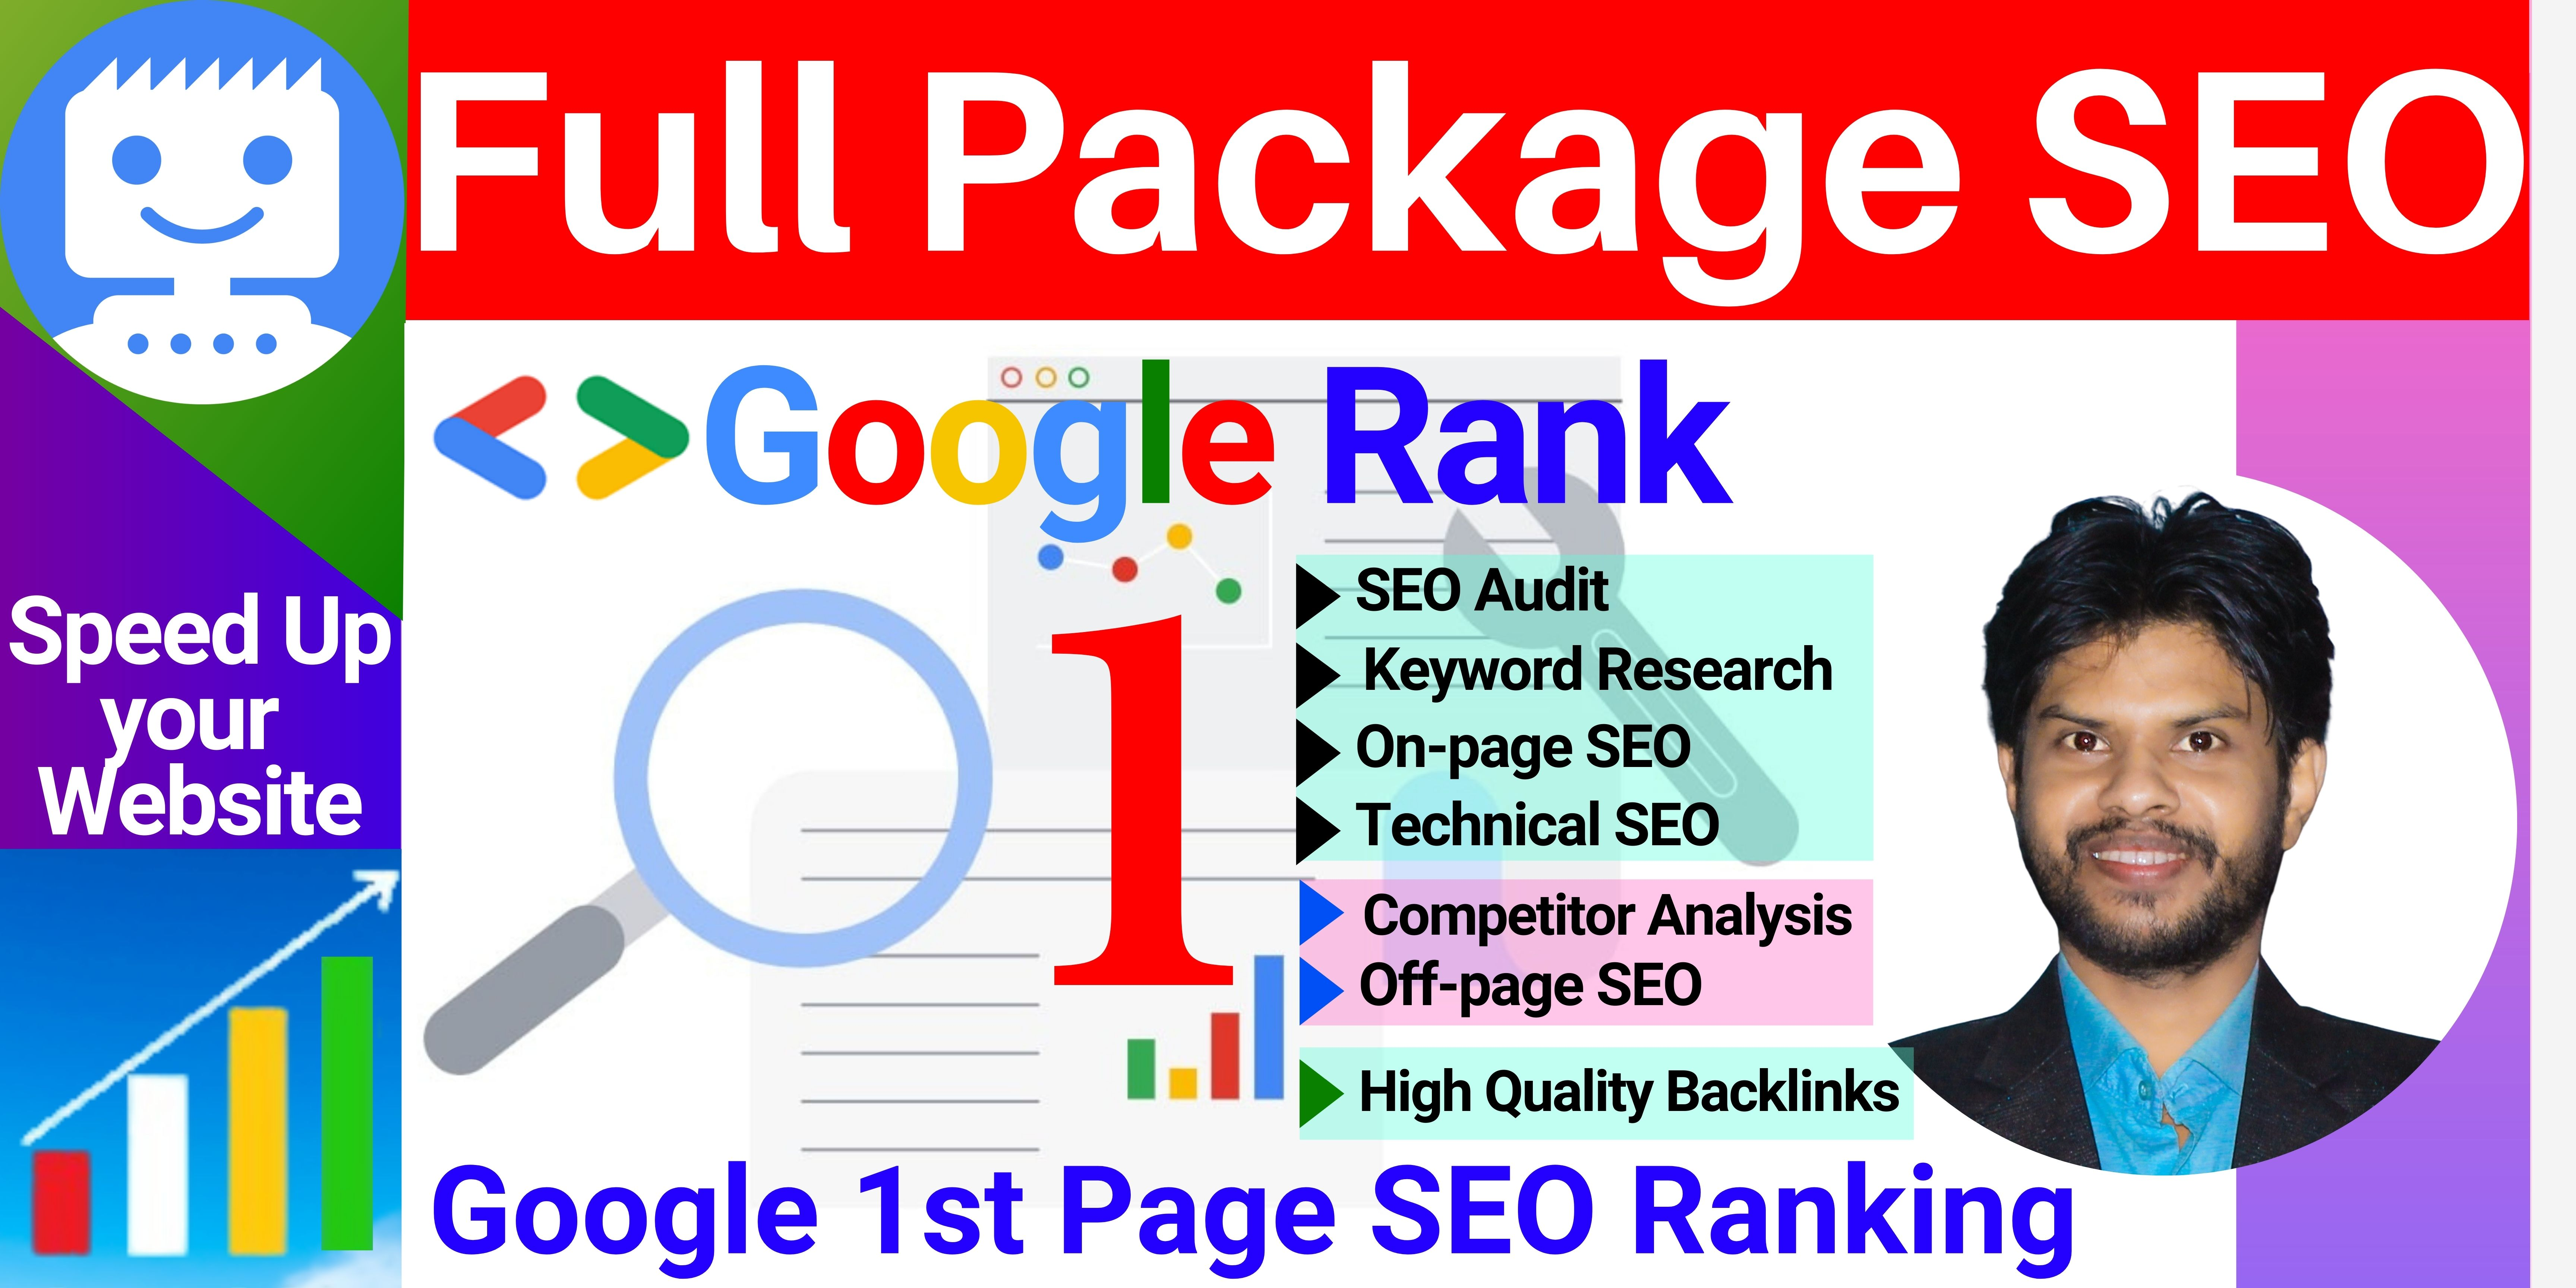 You will get a Full Package SEO service SEO Audit,  On-page SEO,  Off-page SEO